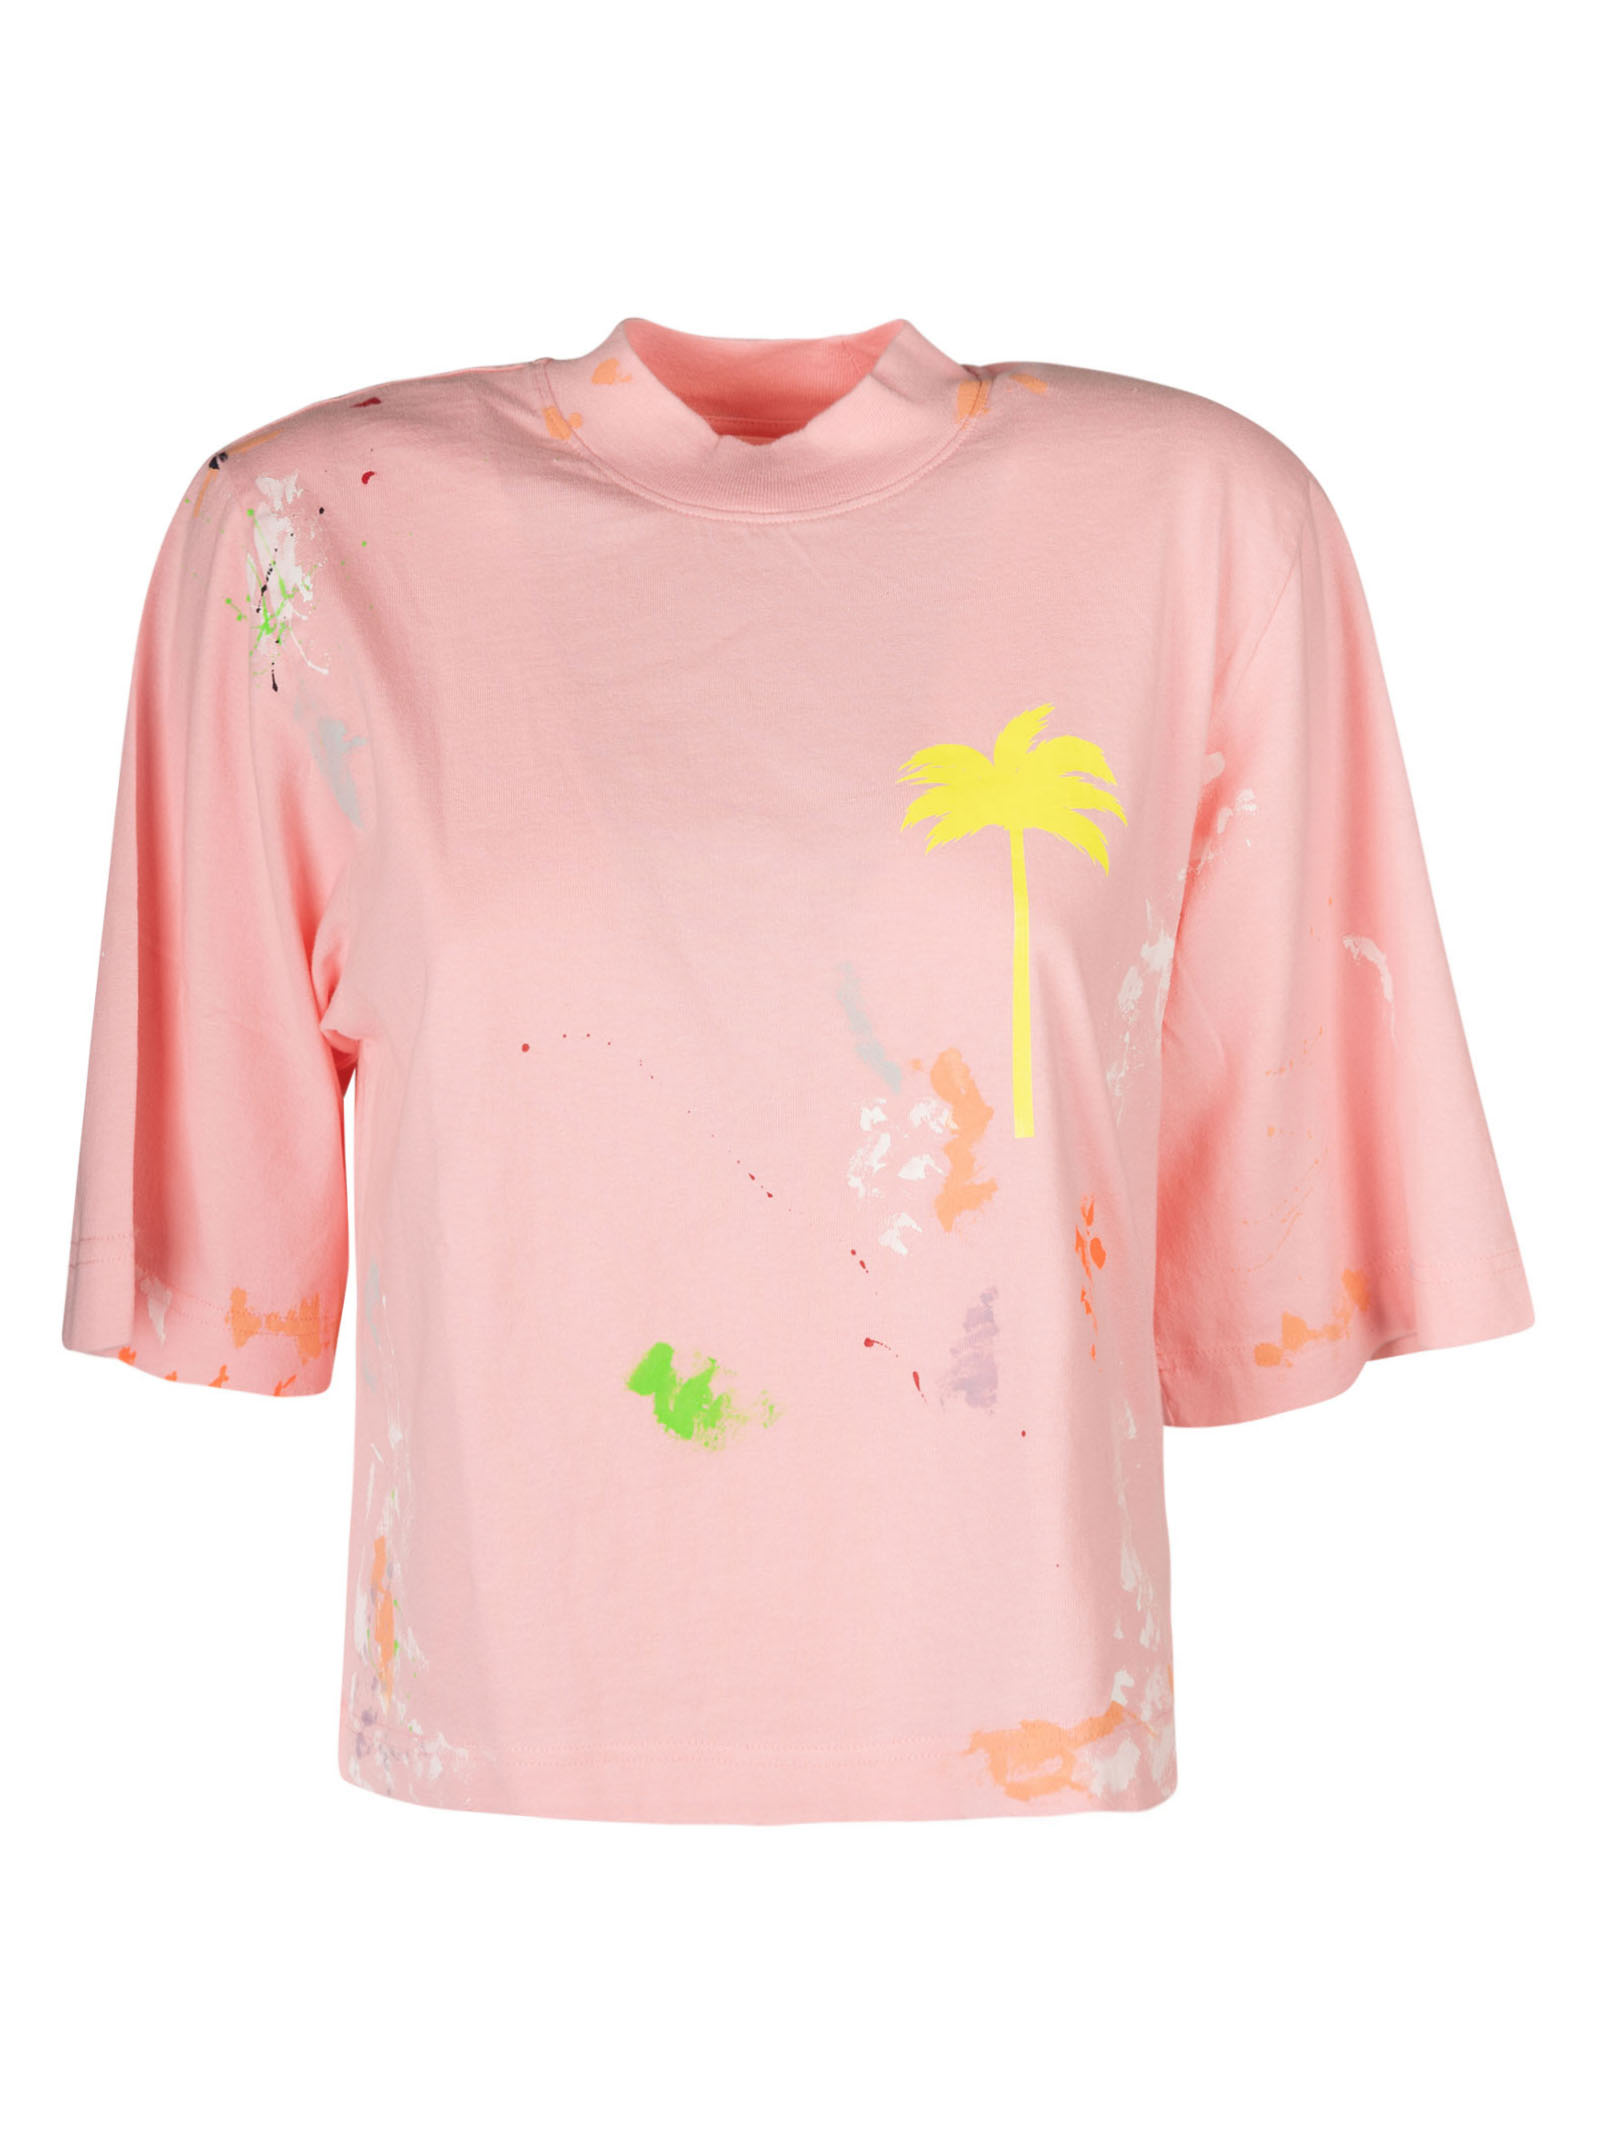 Palm Angels Cottons PXP PAINTED CROPPED T-SHIRT